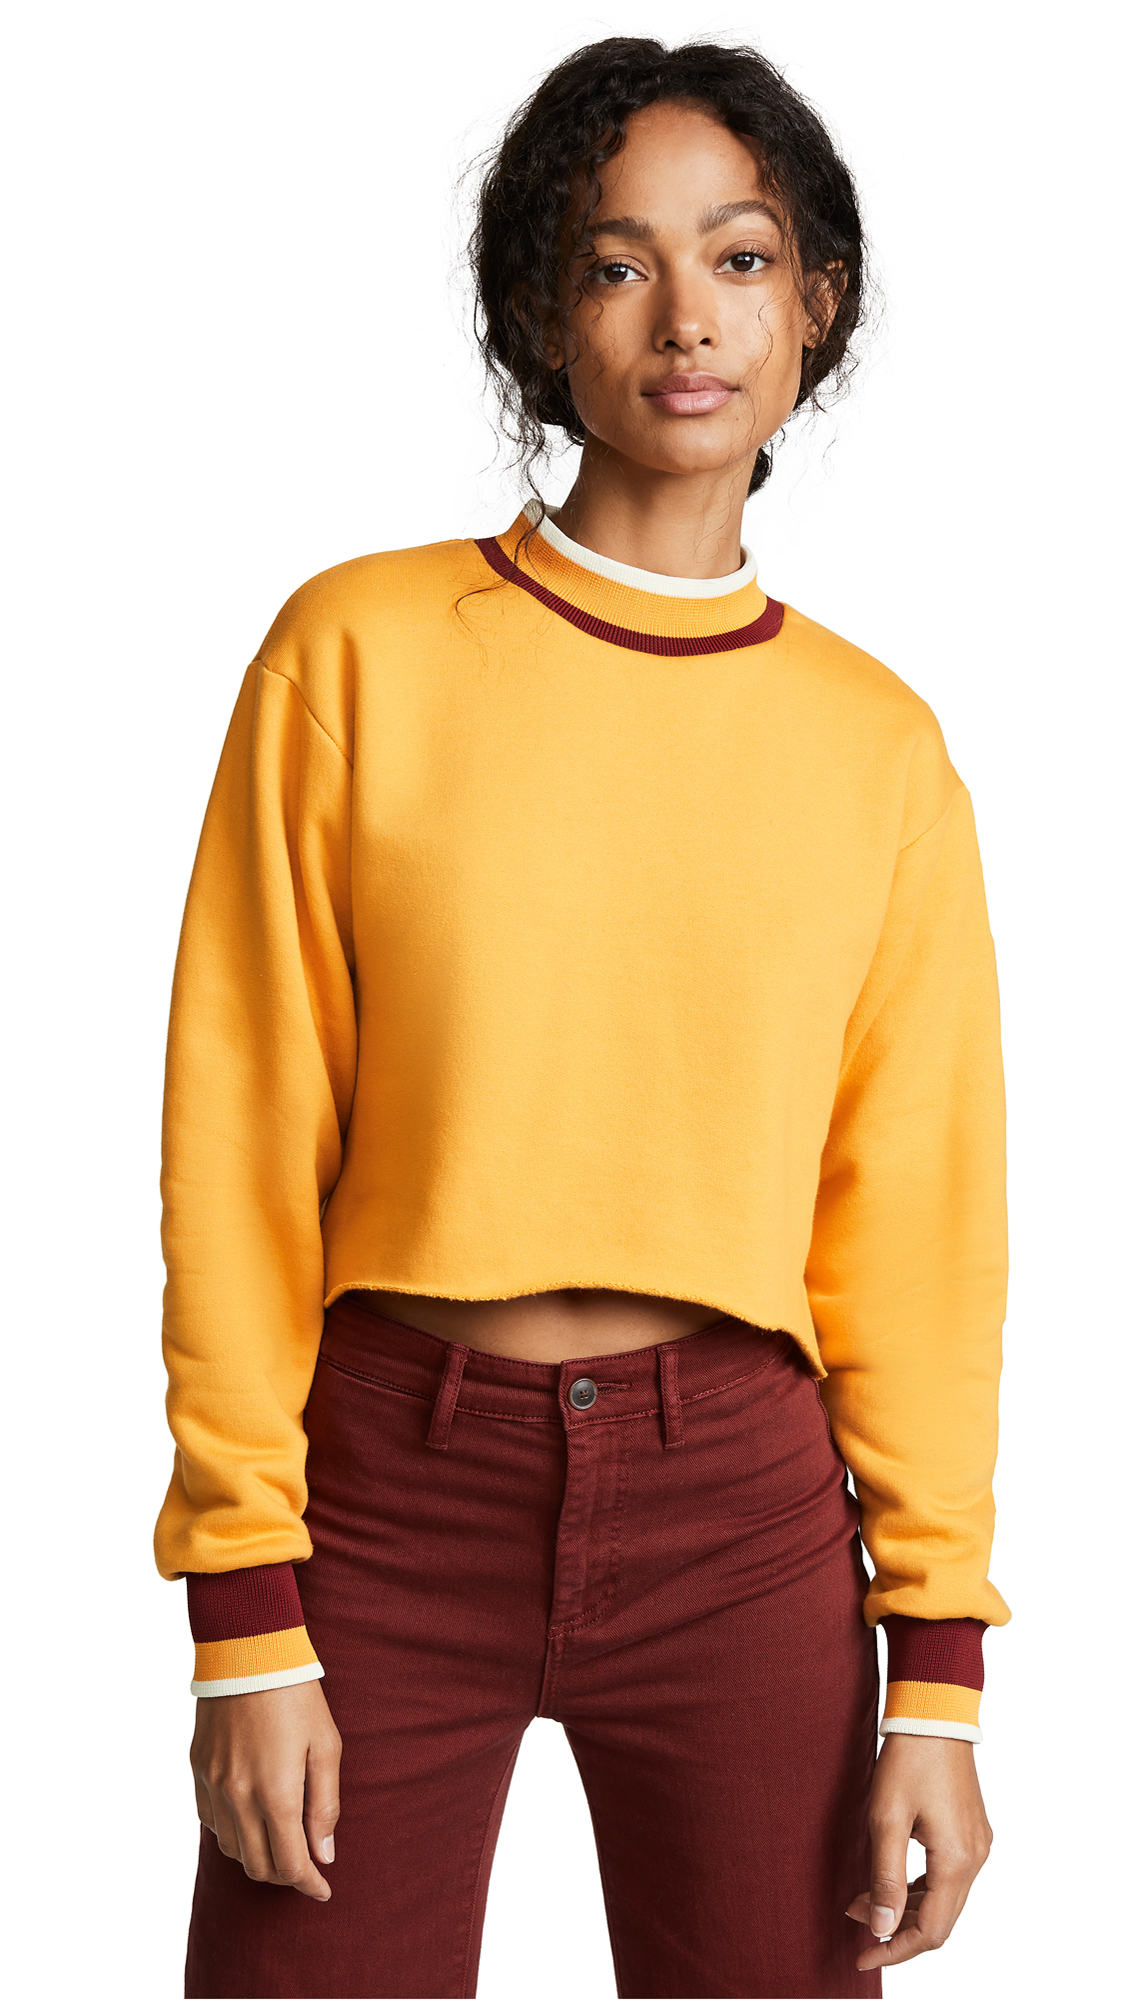 TWENTY MONTREAL Pride Cropped Sweatshirt - Golden Hour